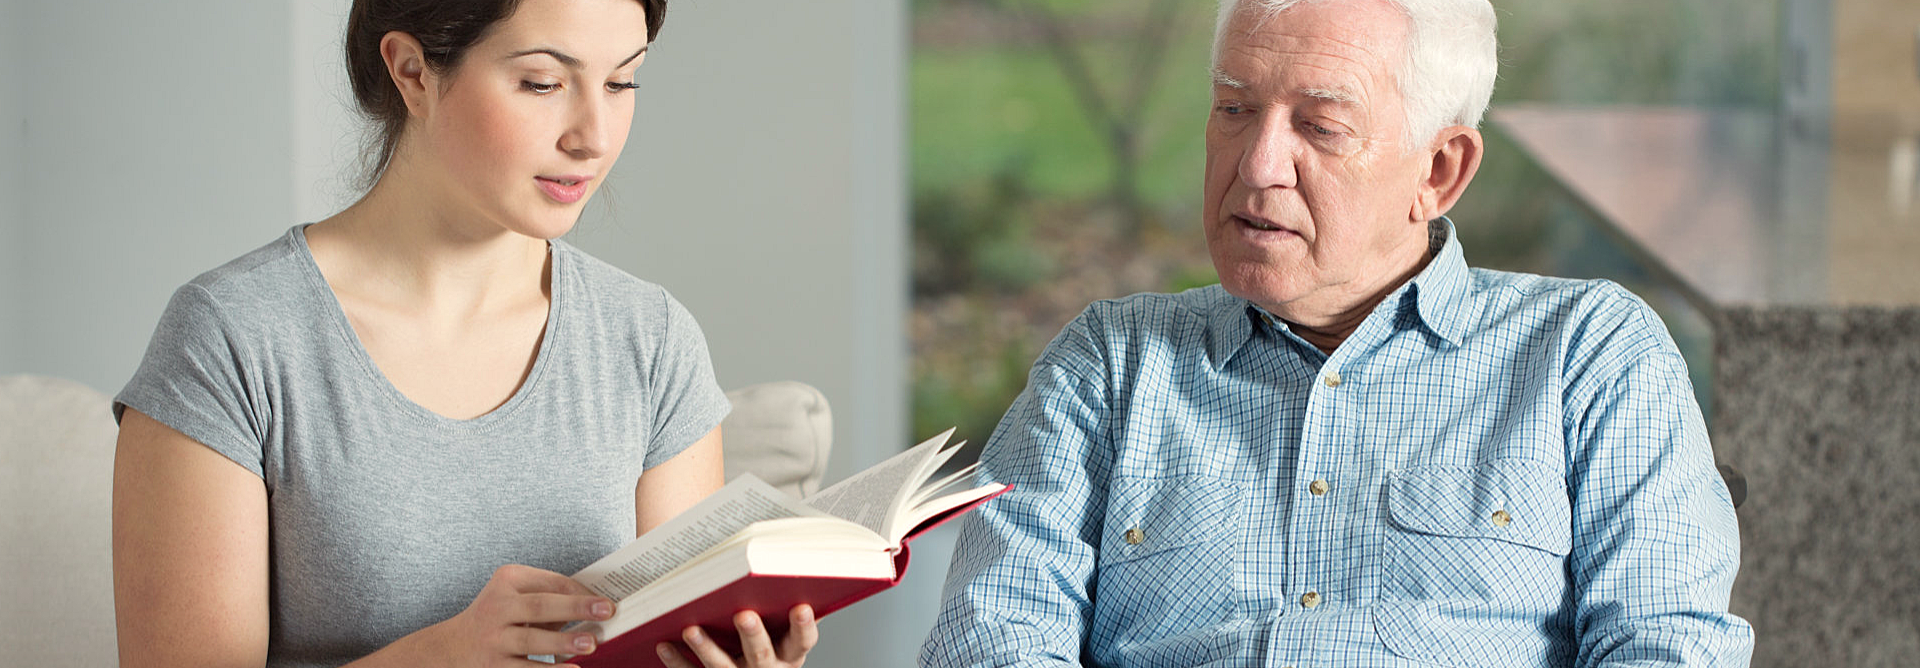 caregiver and elder reading bible